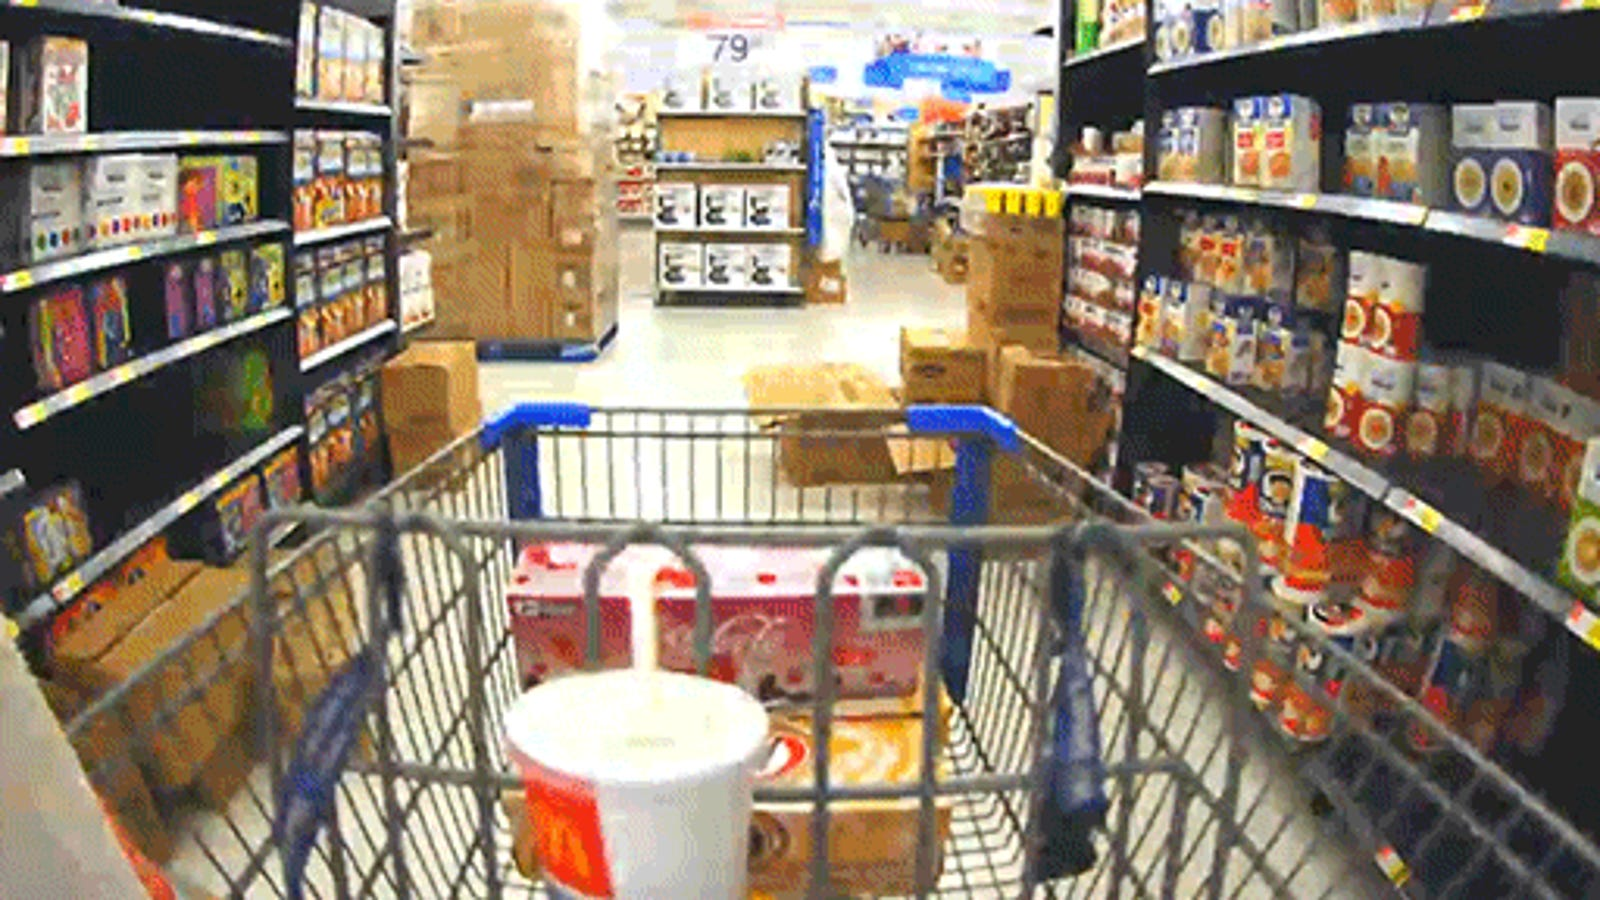 How Grocery Stores Are Cleverly Designed to Make You Spend More Money